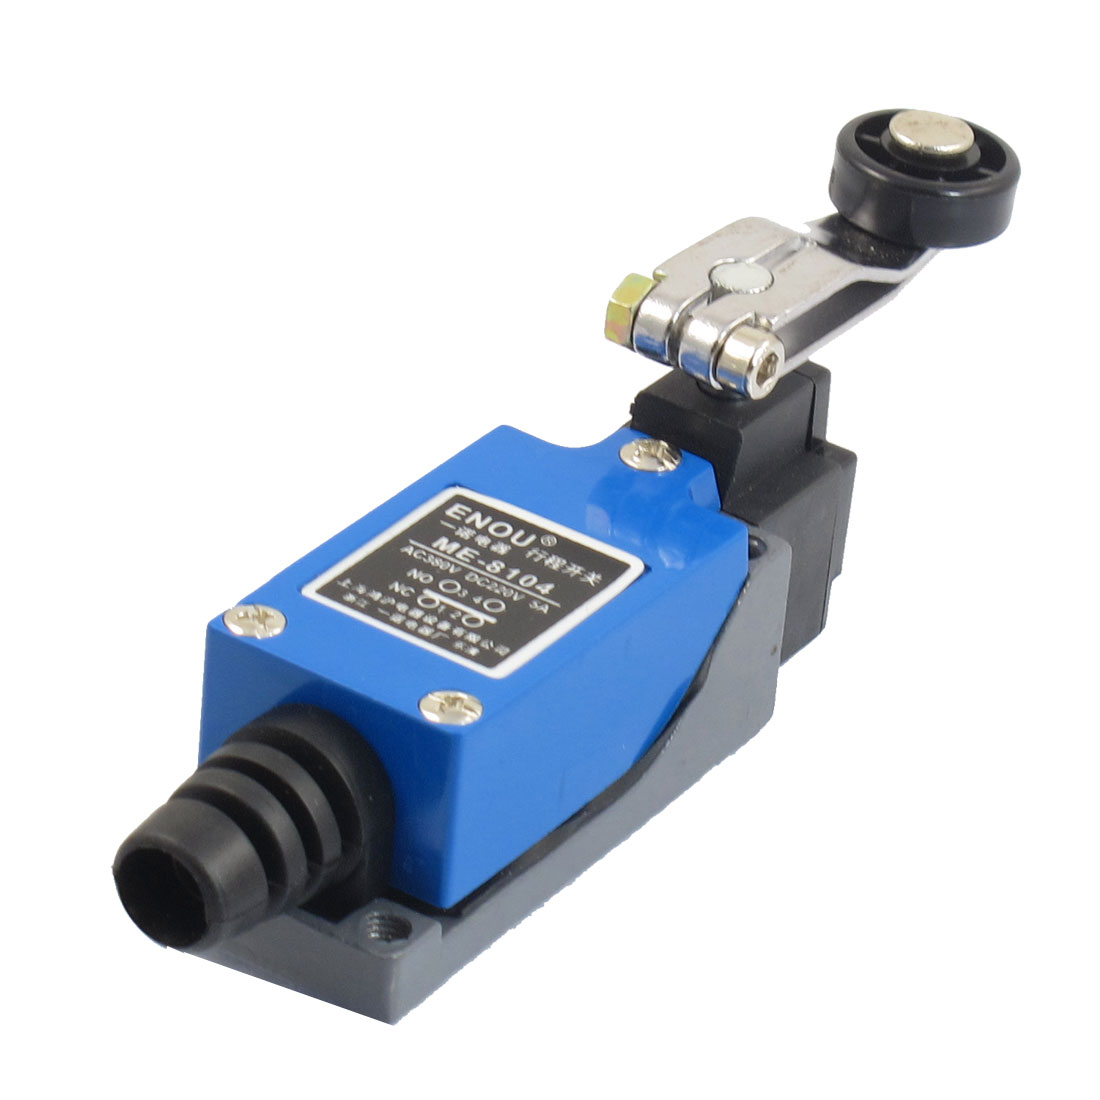 цена на ME-8104 Rotary Plastic Roller Lever Arm Limit Switch for CNC Mill Plasma